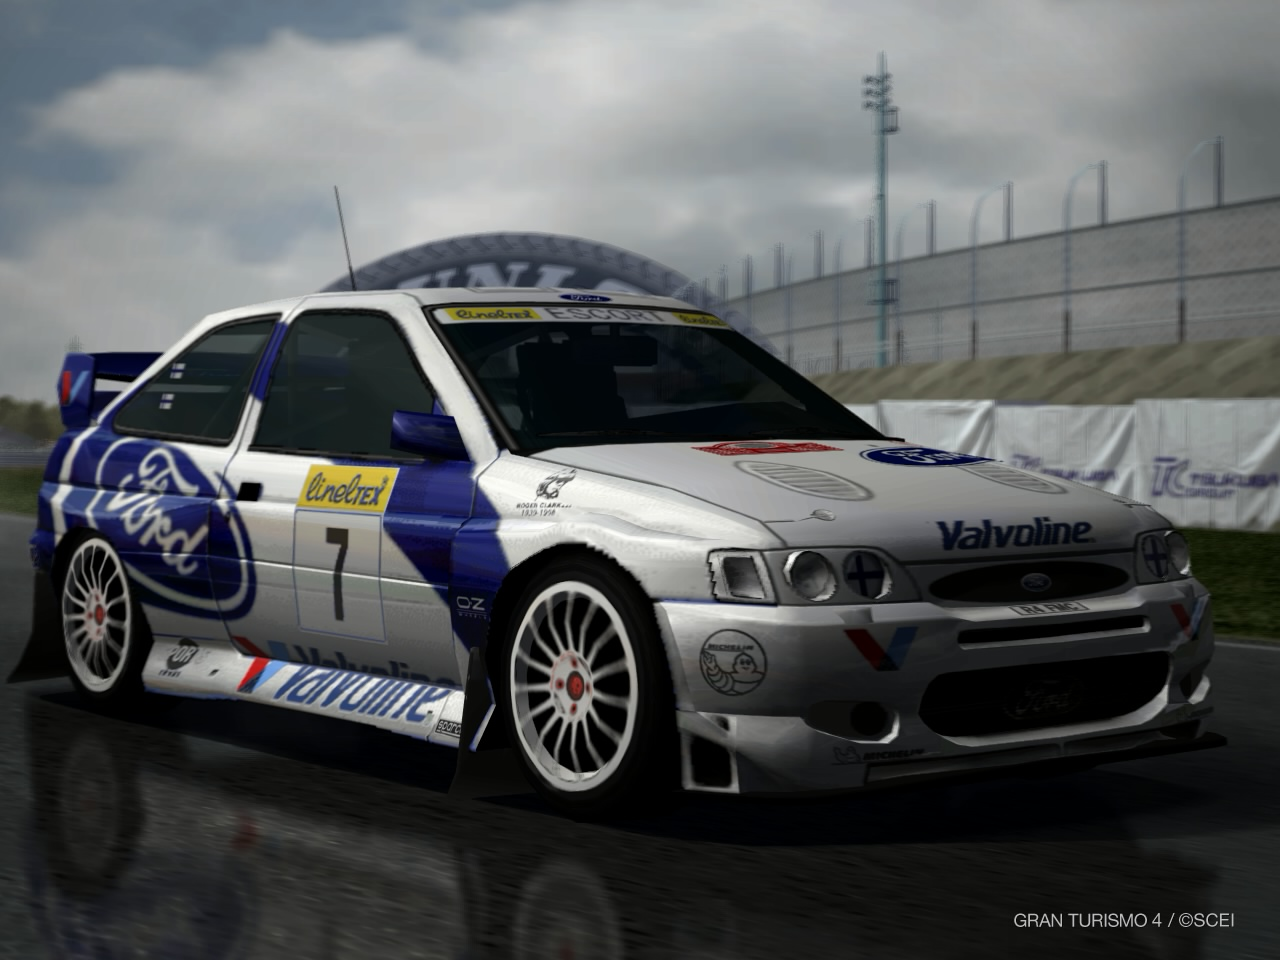 Ford Escort Rally Car \'98 | Gran Turismo Wiki | FANDOM powered by Wikia